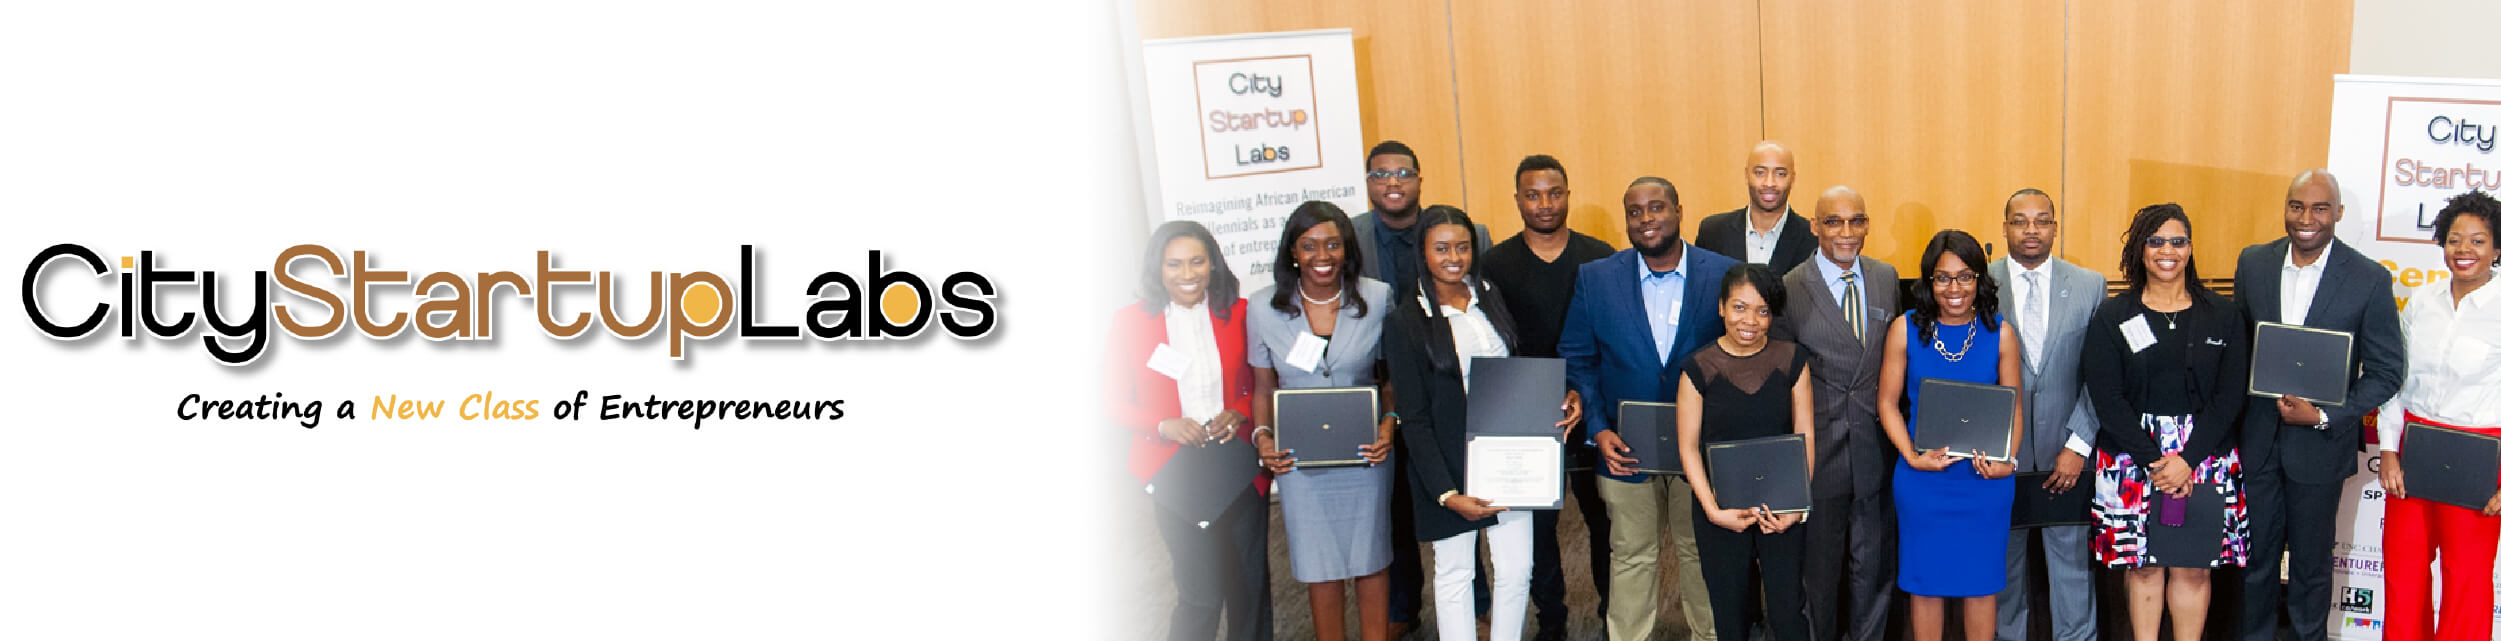 City Startup Labs logo with African American professional posing for group photo